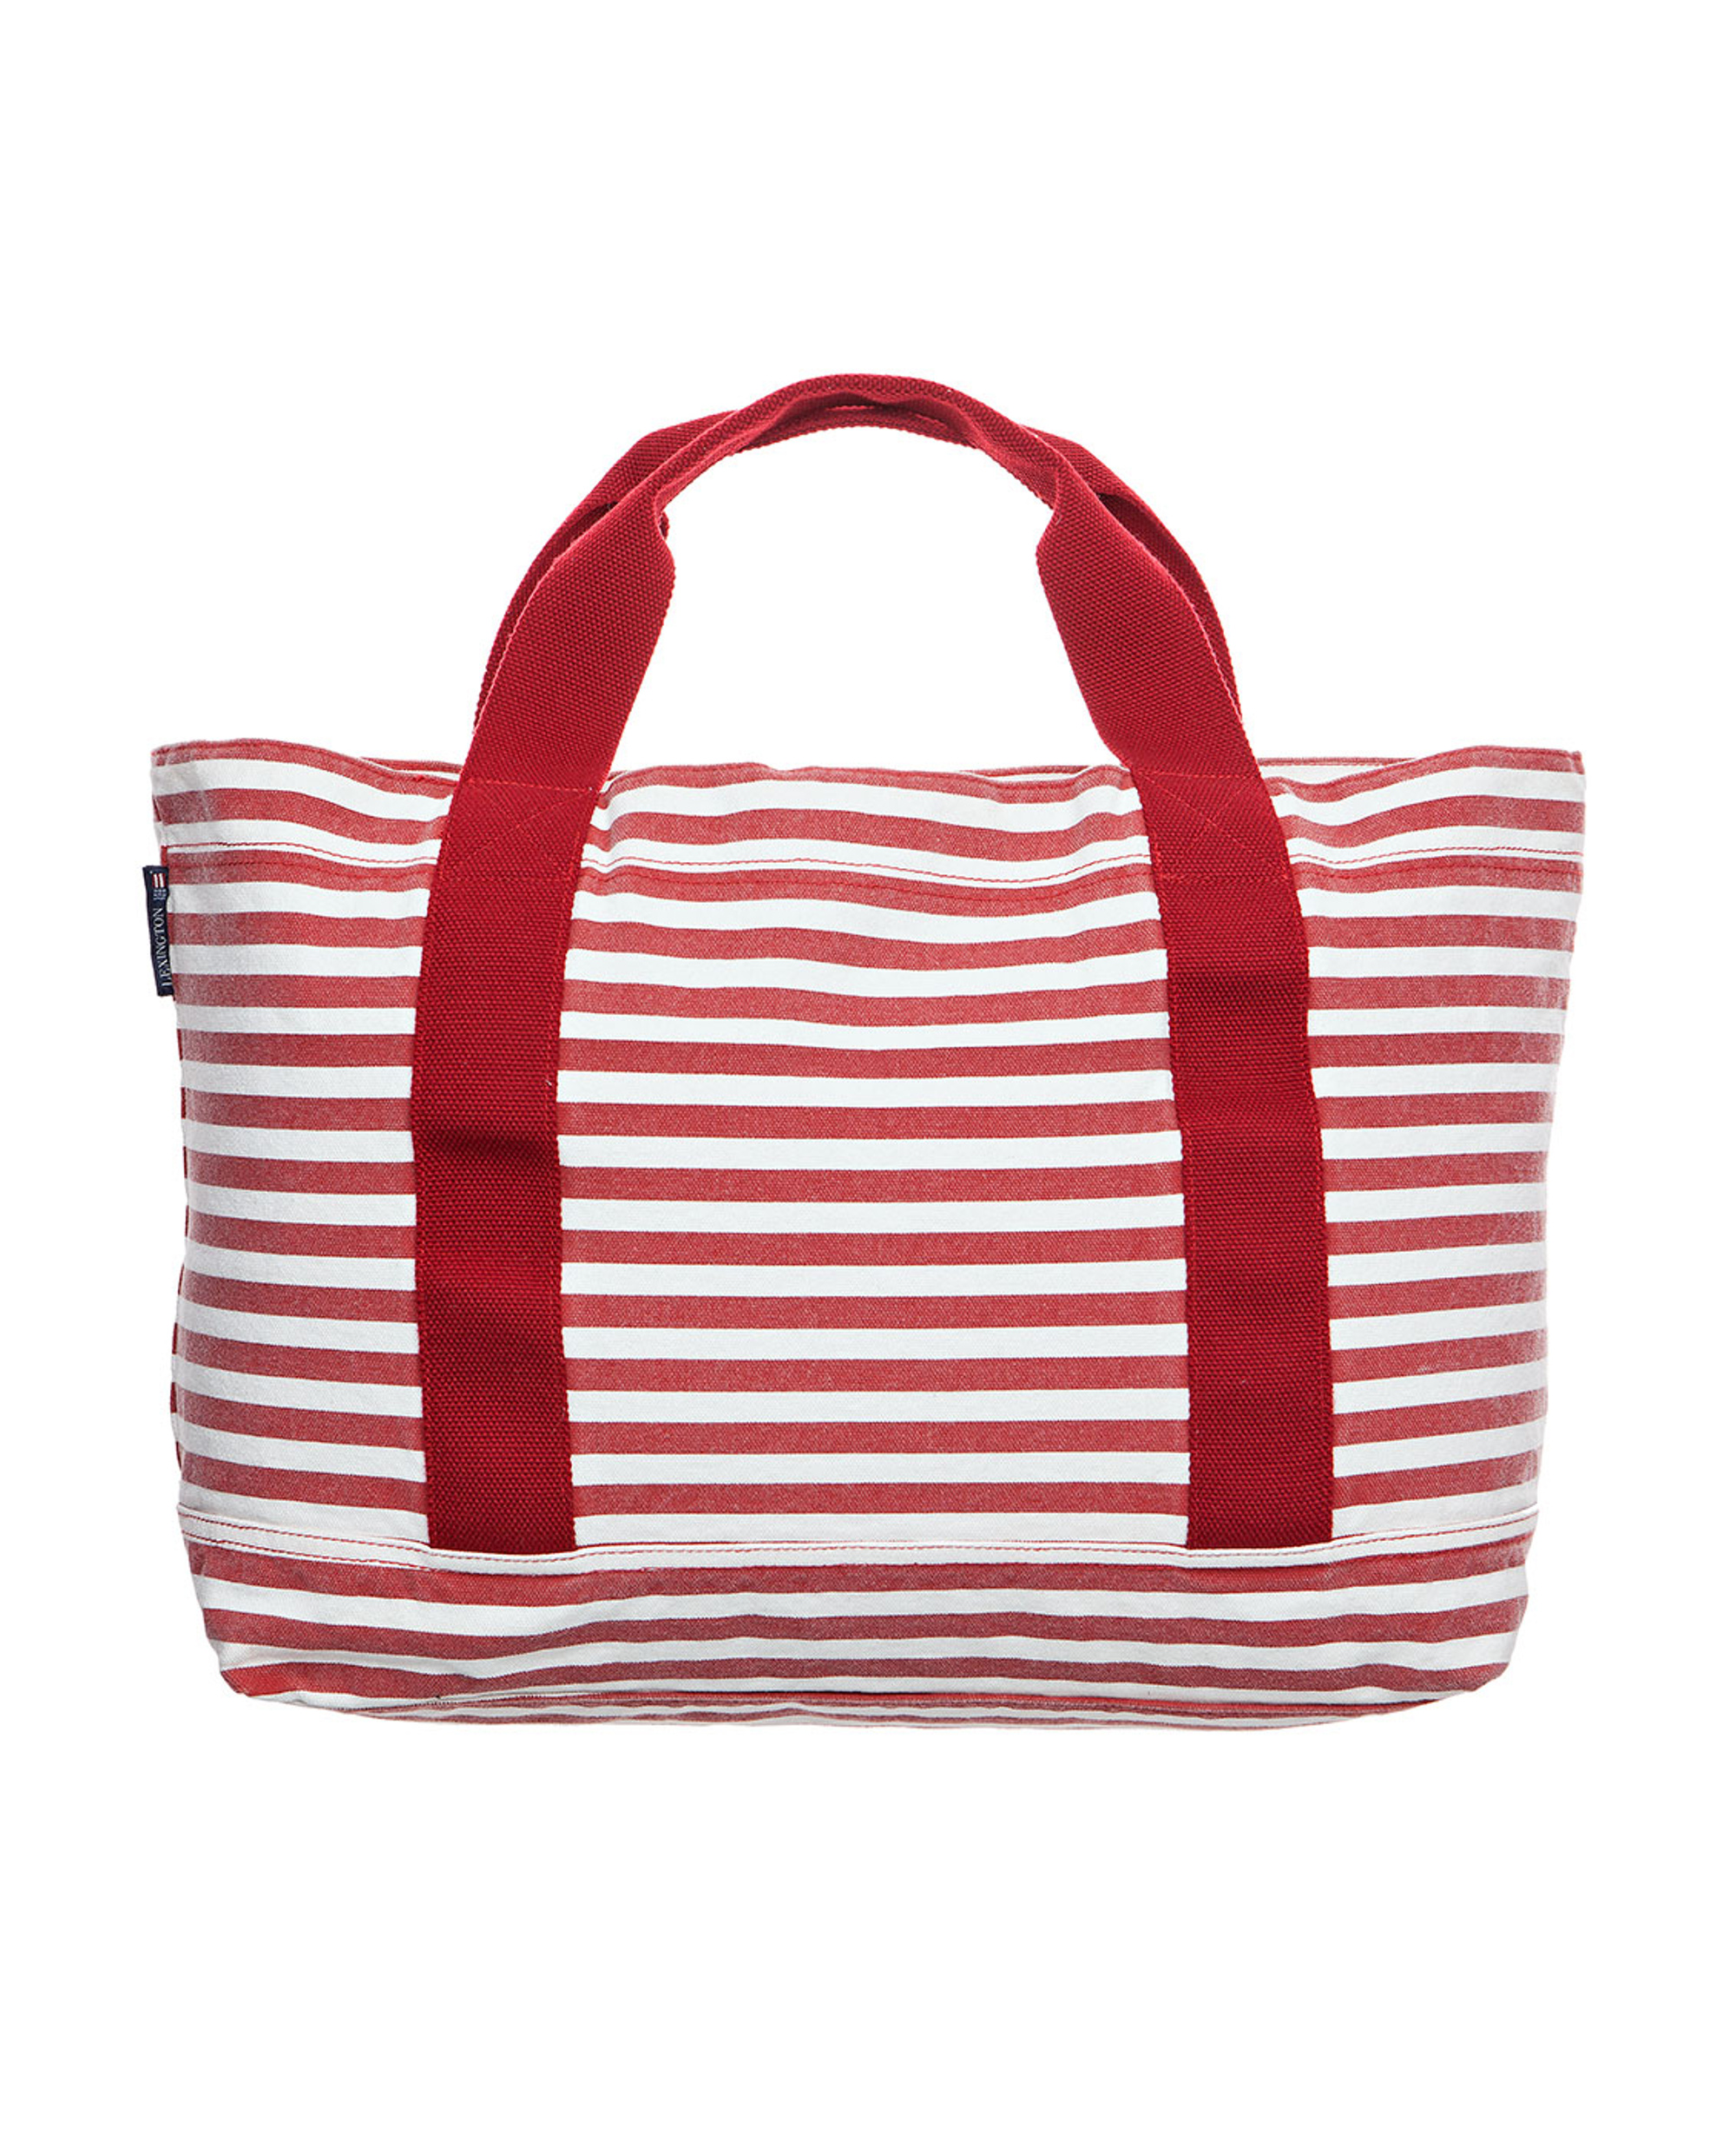 Pacific Tote Bag, White/Red